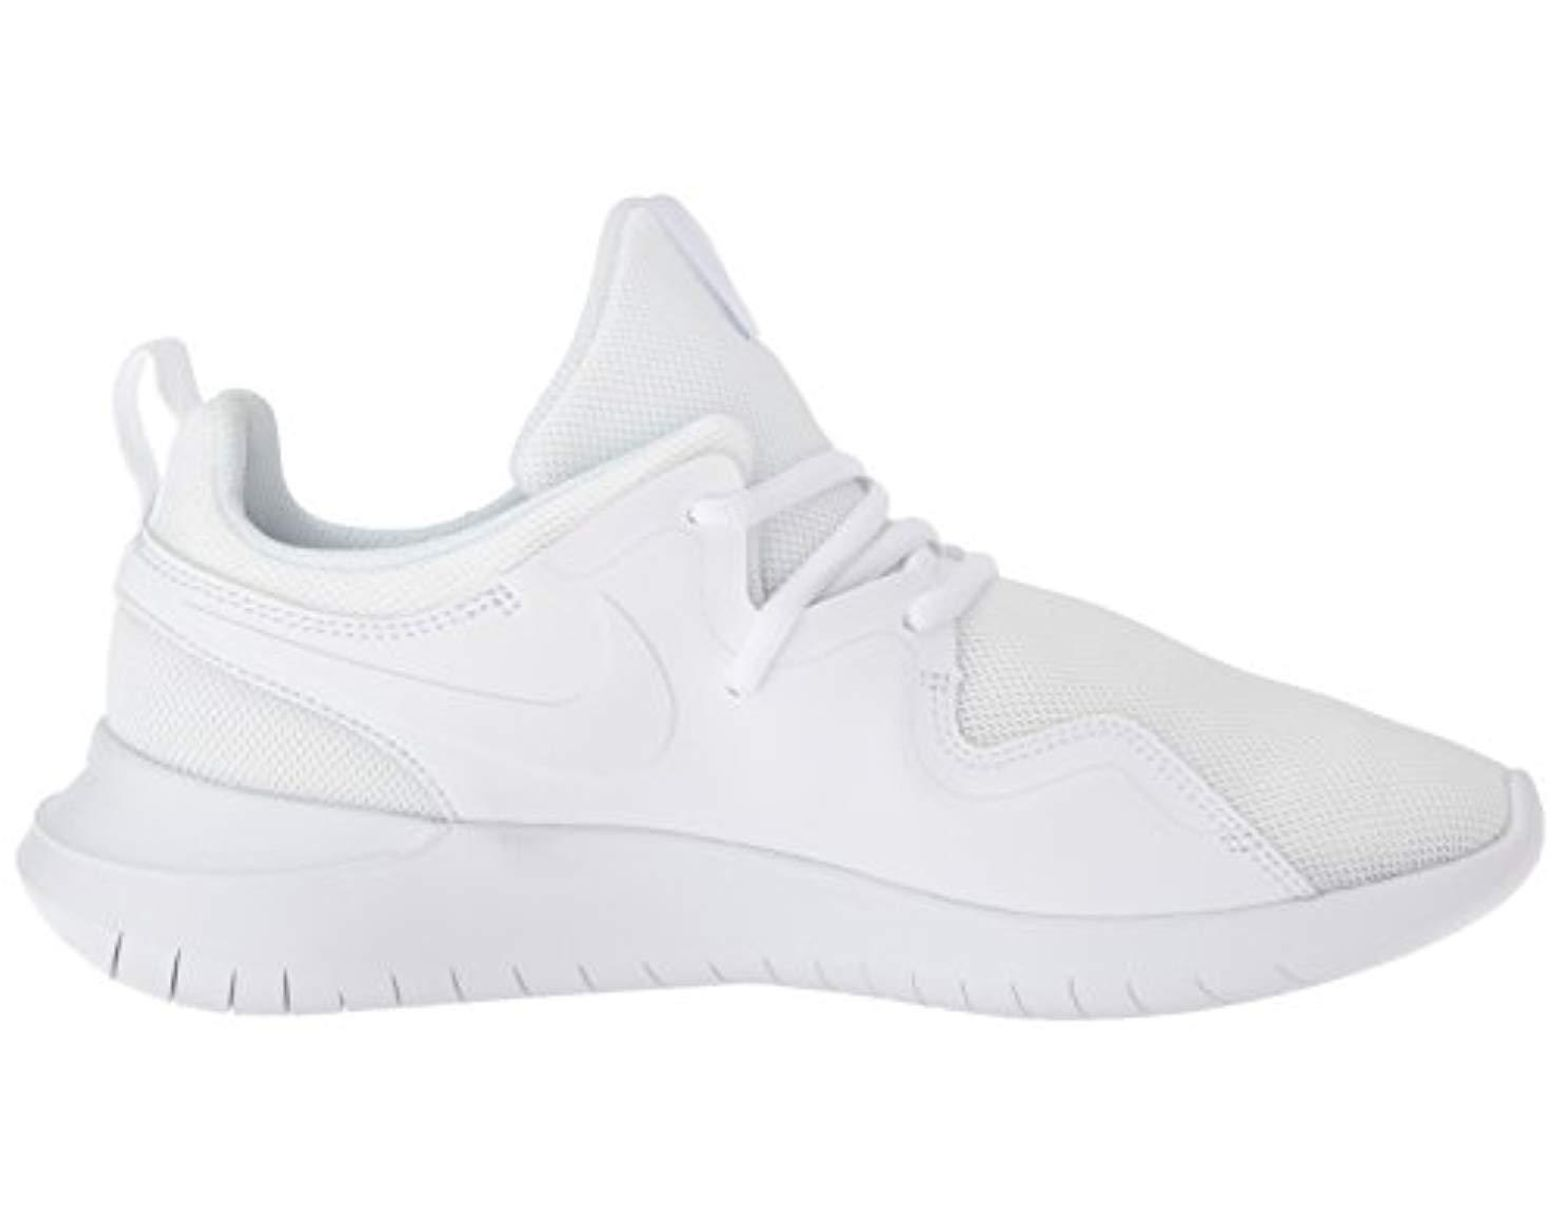 947c2e1565399 Nike Wmns Tessen Competition Running Shoes in White - Lyst